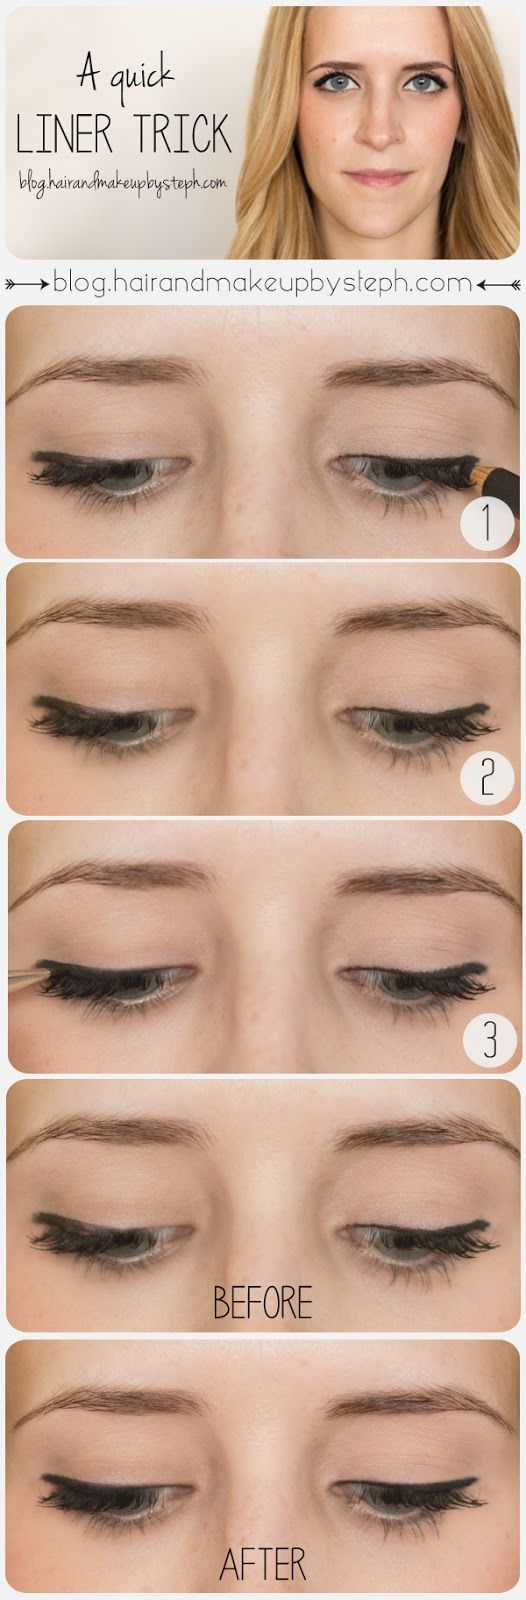 The best images about Made up faces on Pinterest Make up Hair